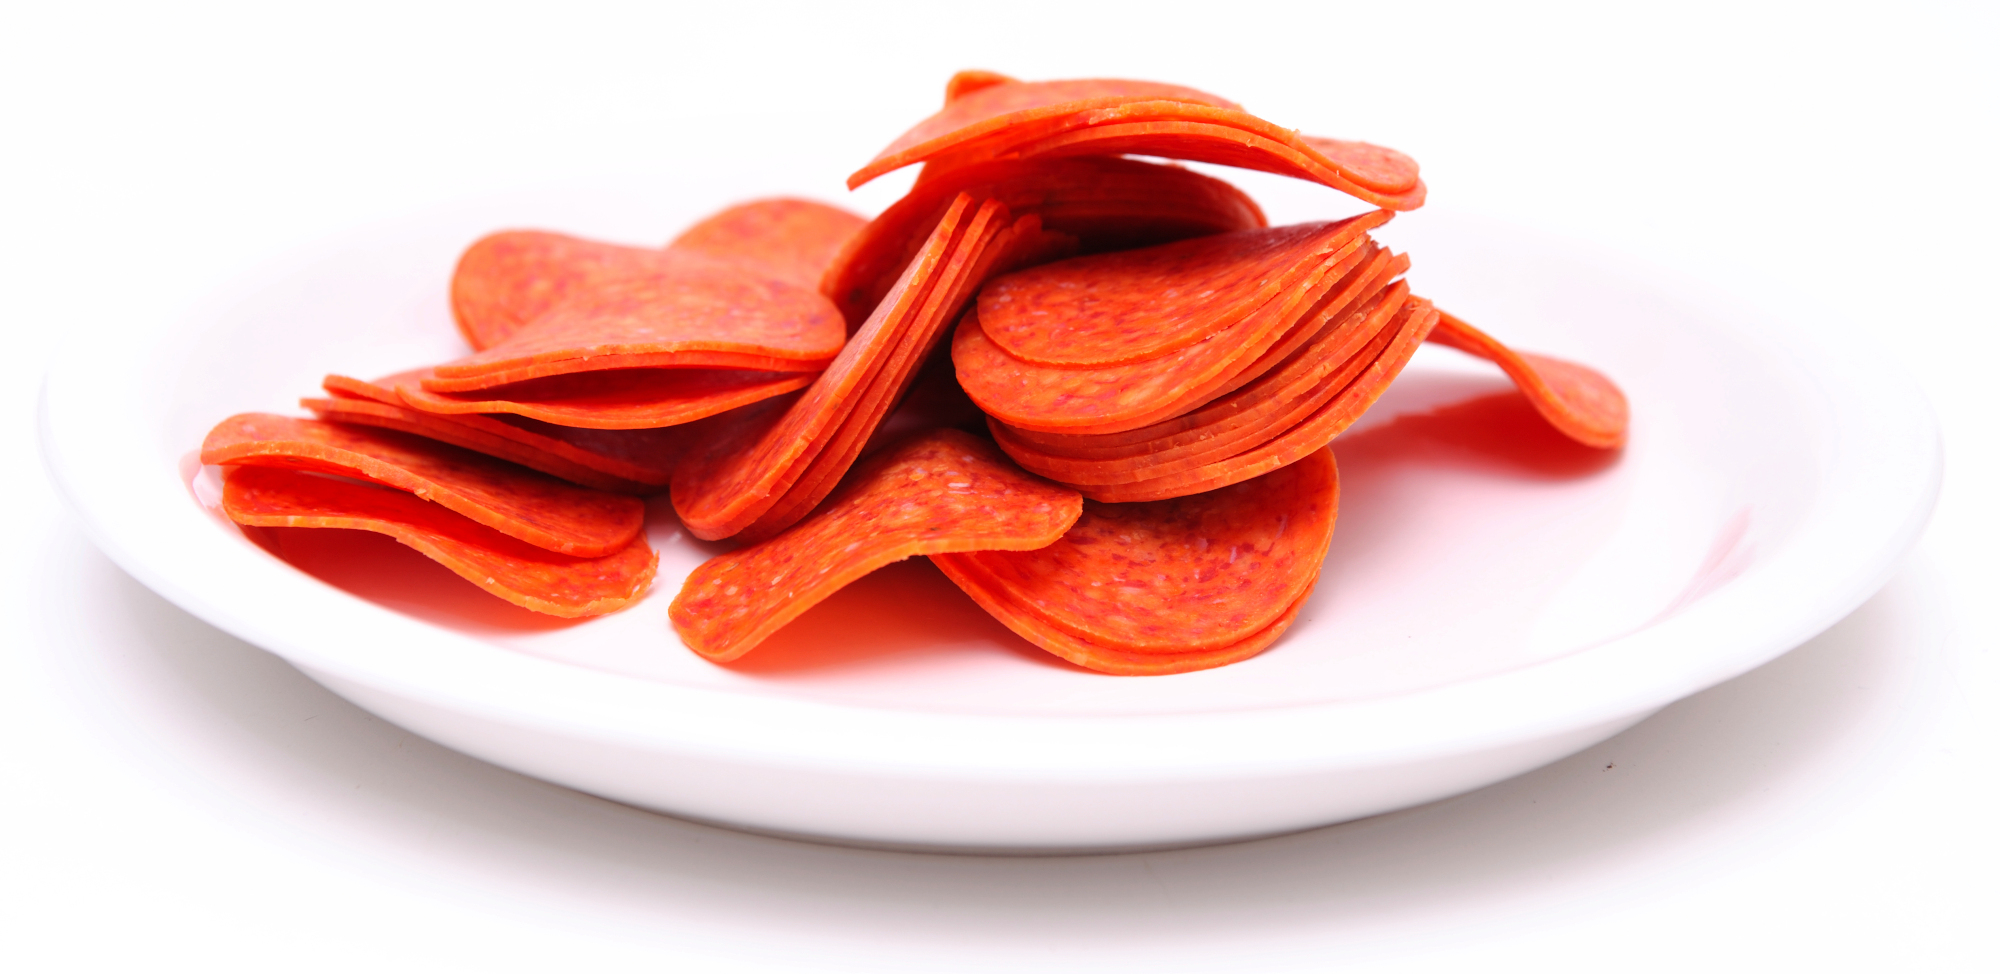 high protein low carb snacks, pepperoni